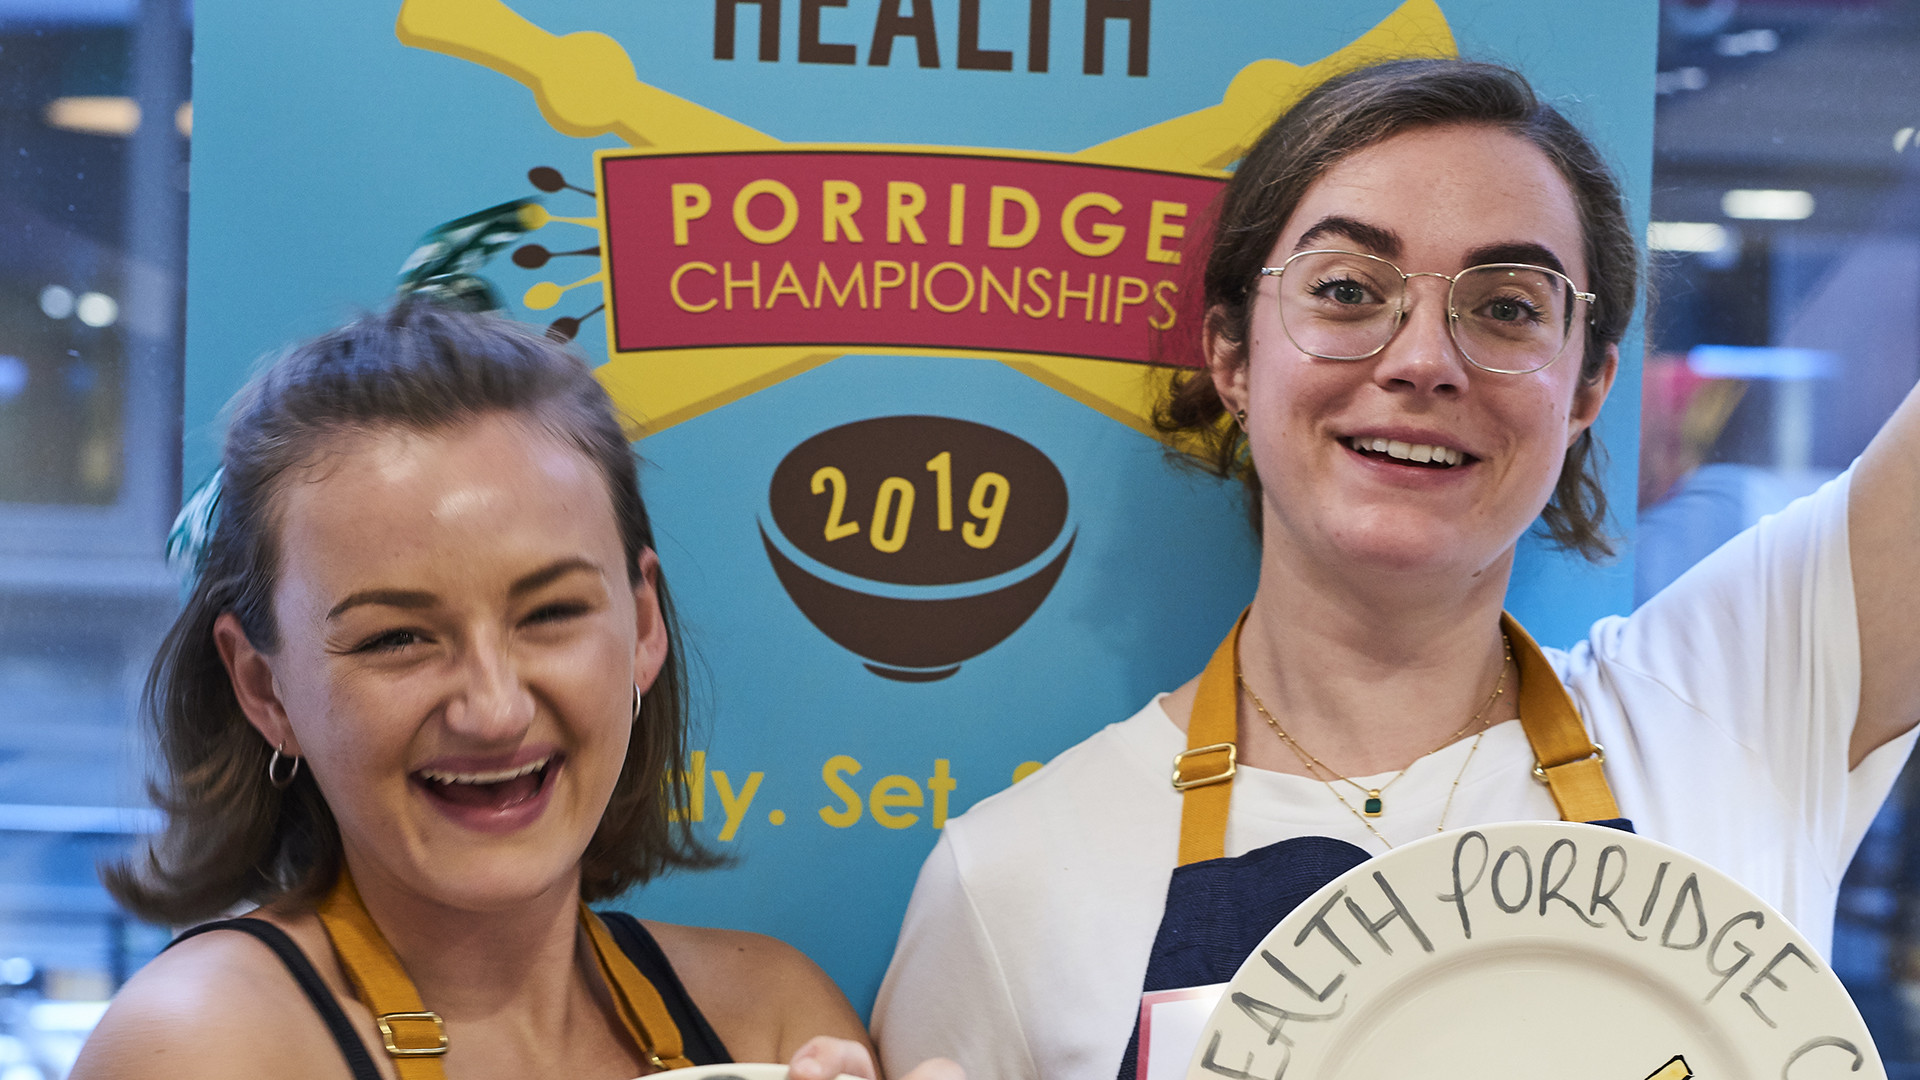 This year's Rude Health Porridge Championship winners and Foodism staffers, Ally and Lydia (L-R)